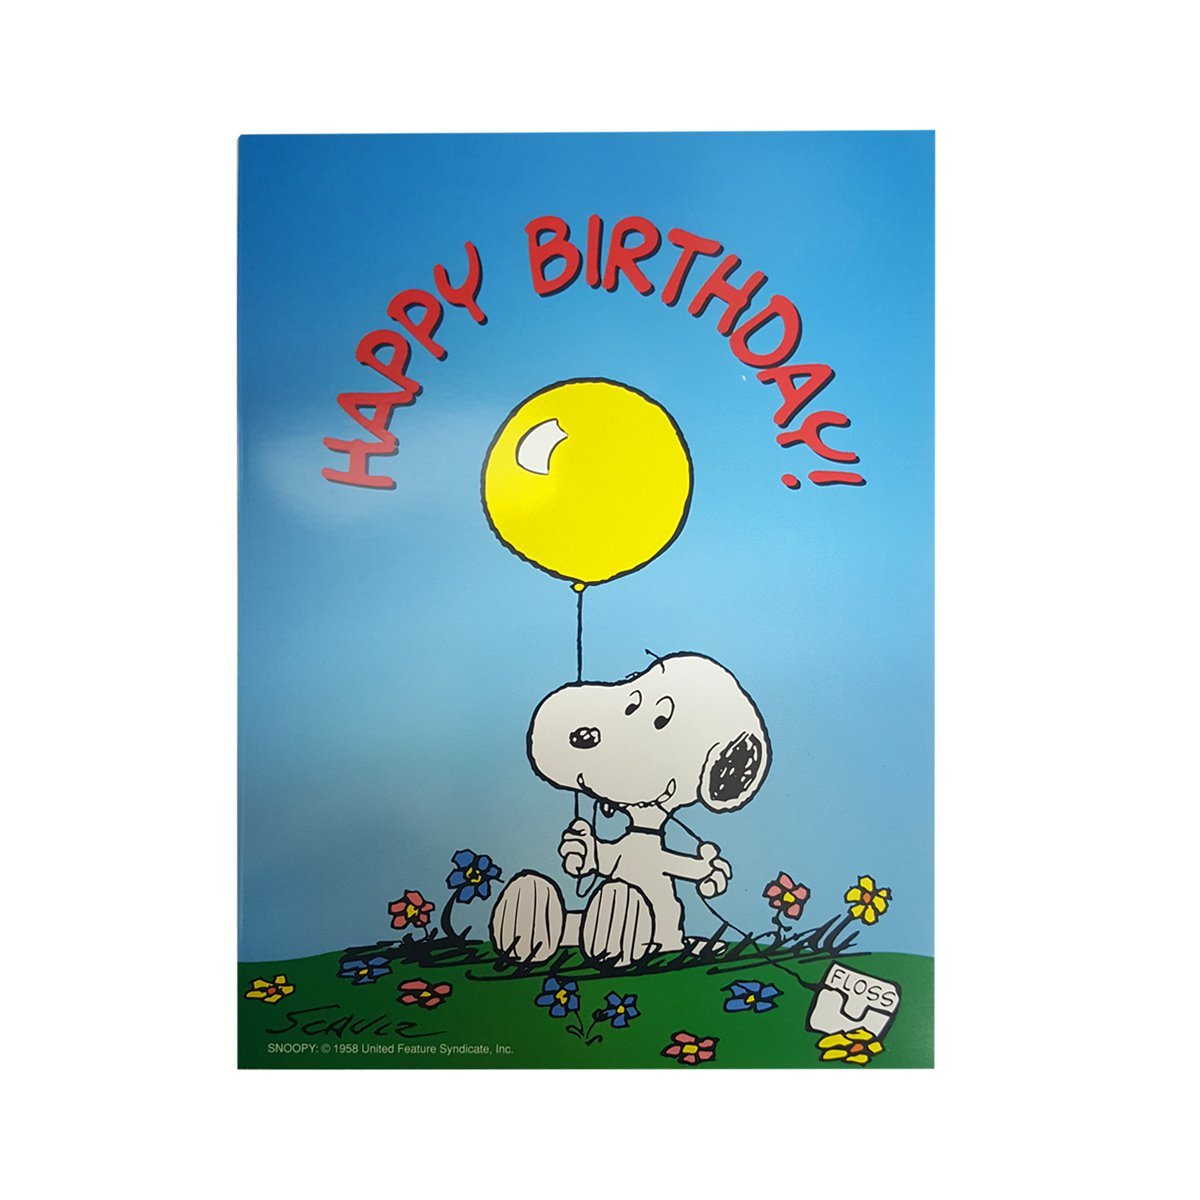 Amazon SmartPractice DentistHappy Birthday Funny Humor Peanuts Snoopy Greeting Card Office Products